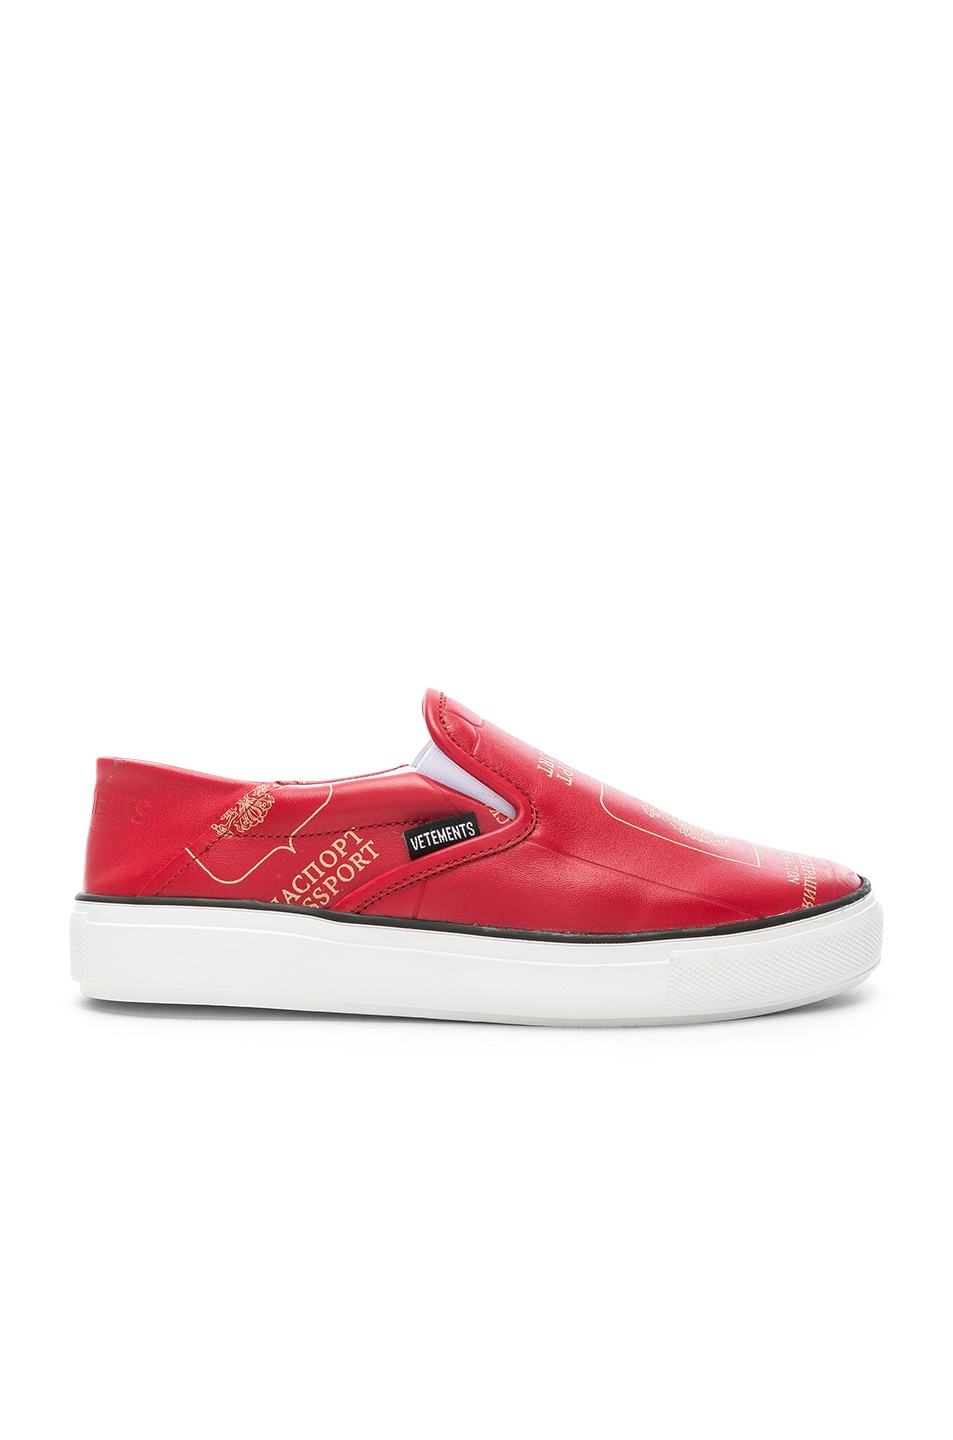 Image 1 of VETEMENTS Passport Slip Ons in Red